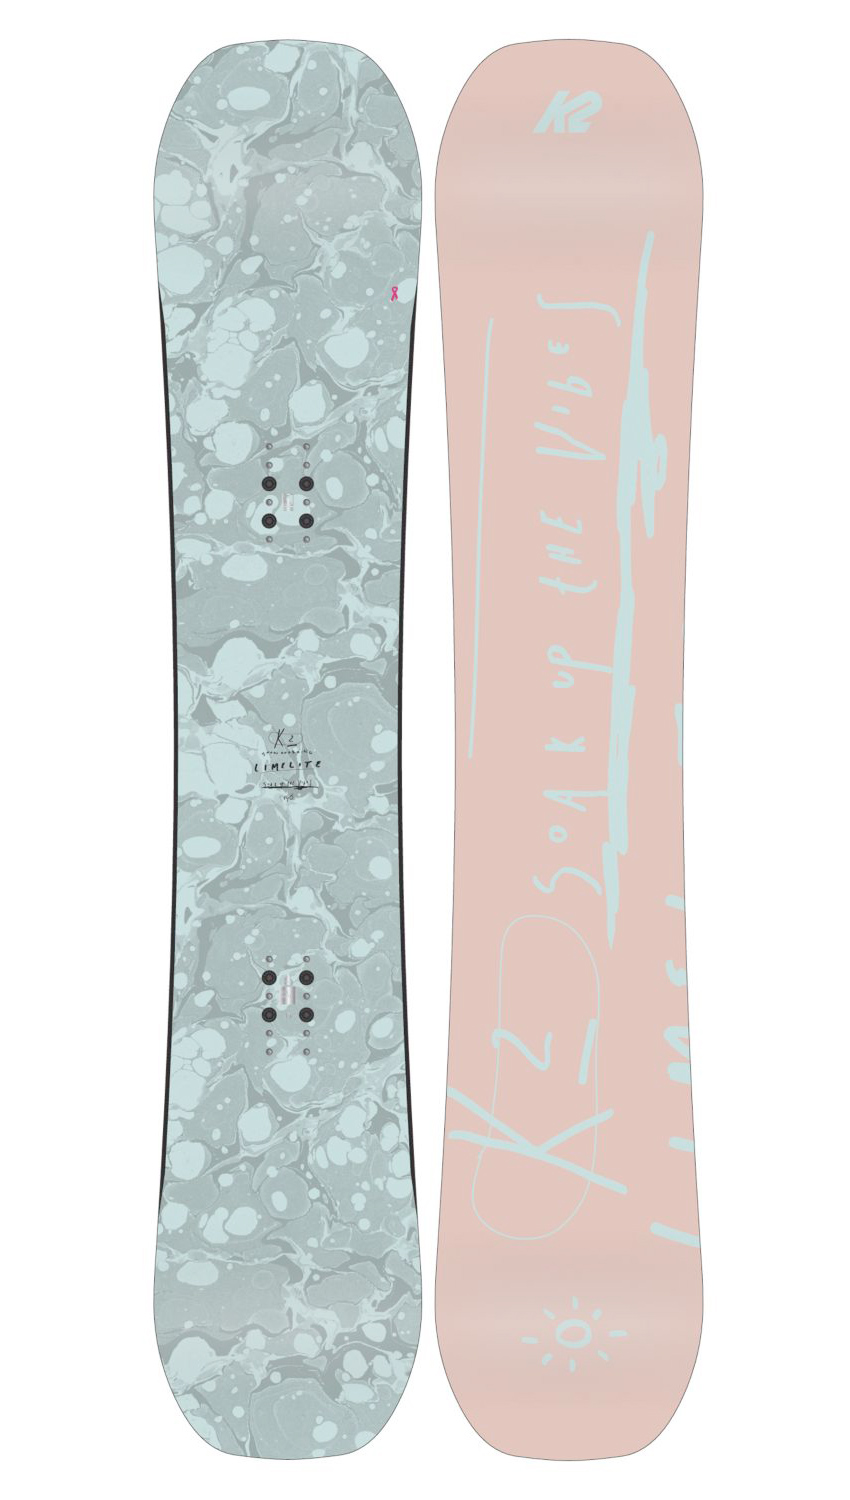 twin mountain women Get snow skis for everyone in your family this year sun & ski has a great selection of snow skis for men, women and kids find your favorites today.